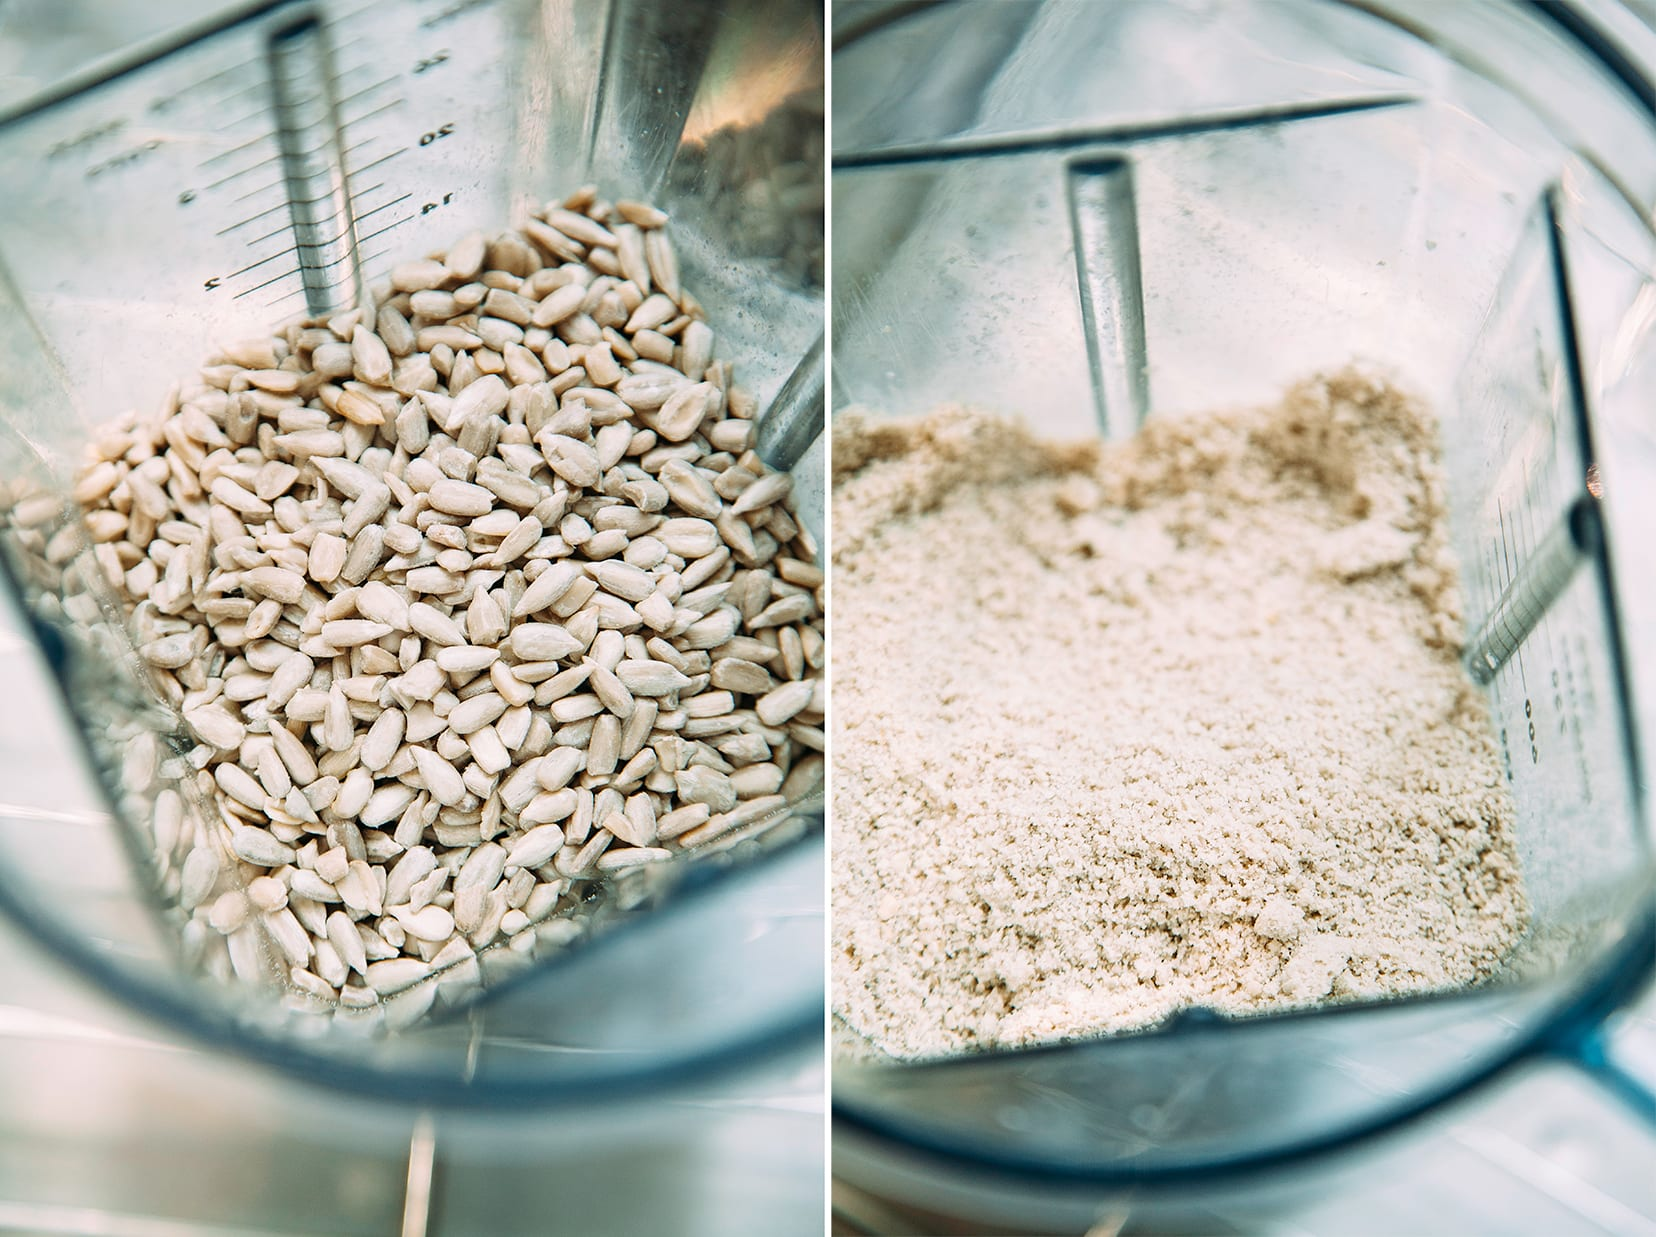 """2 photos: one shows sunflower seeds in a blender from overhead. The next one shows those sunflower seeds ground up into a """"flour."""""""